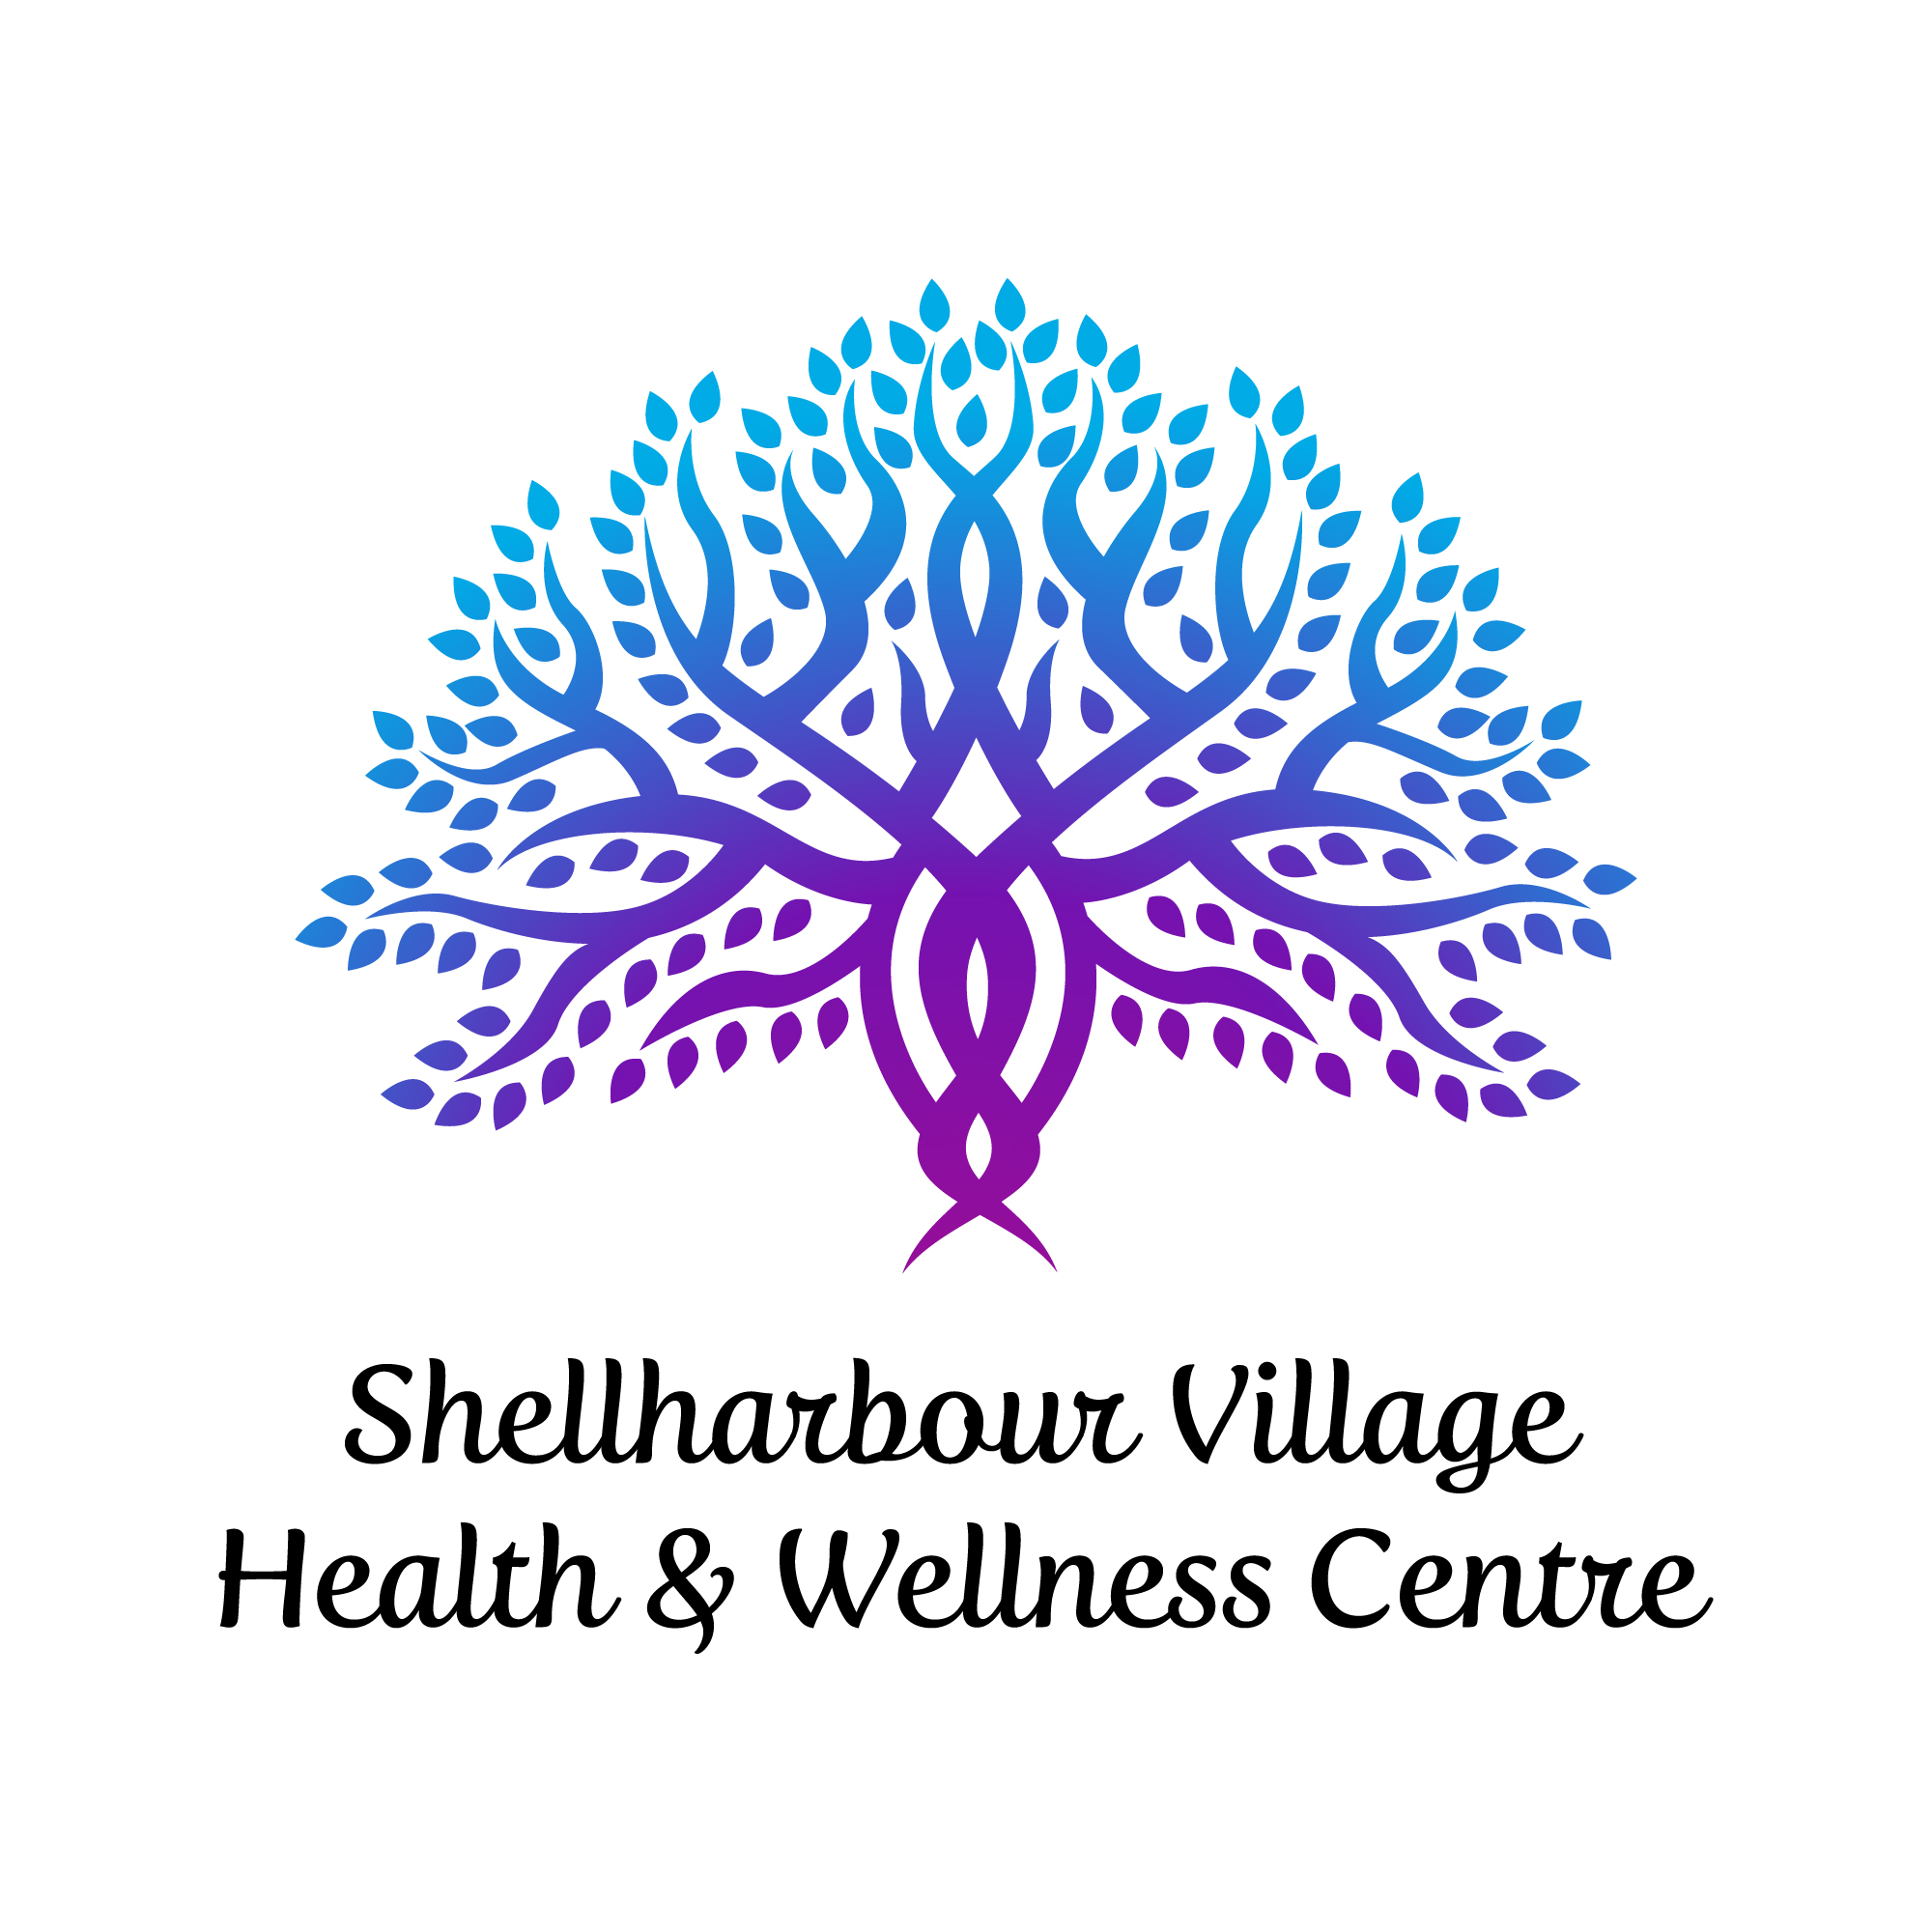 Shellharbour Village Health & Wellness Centre